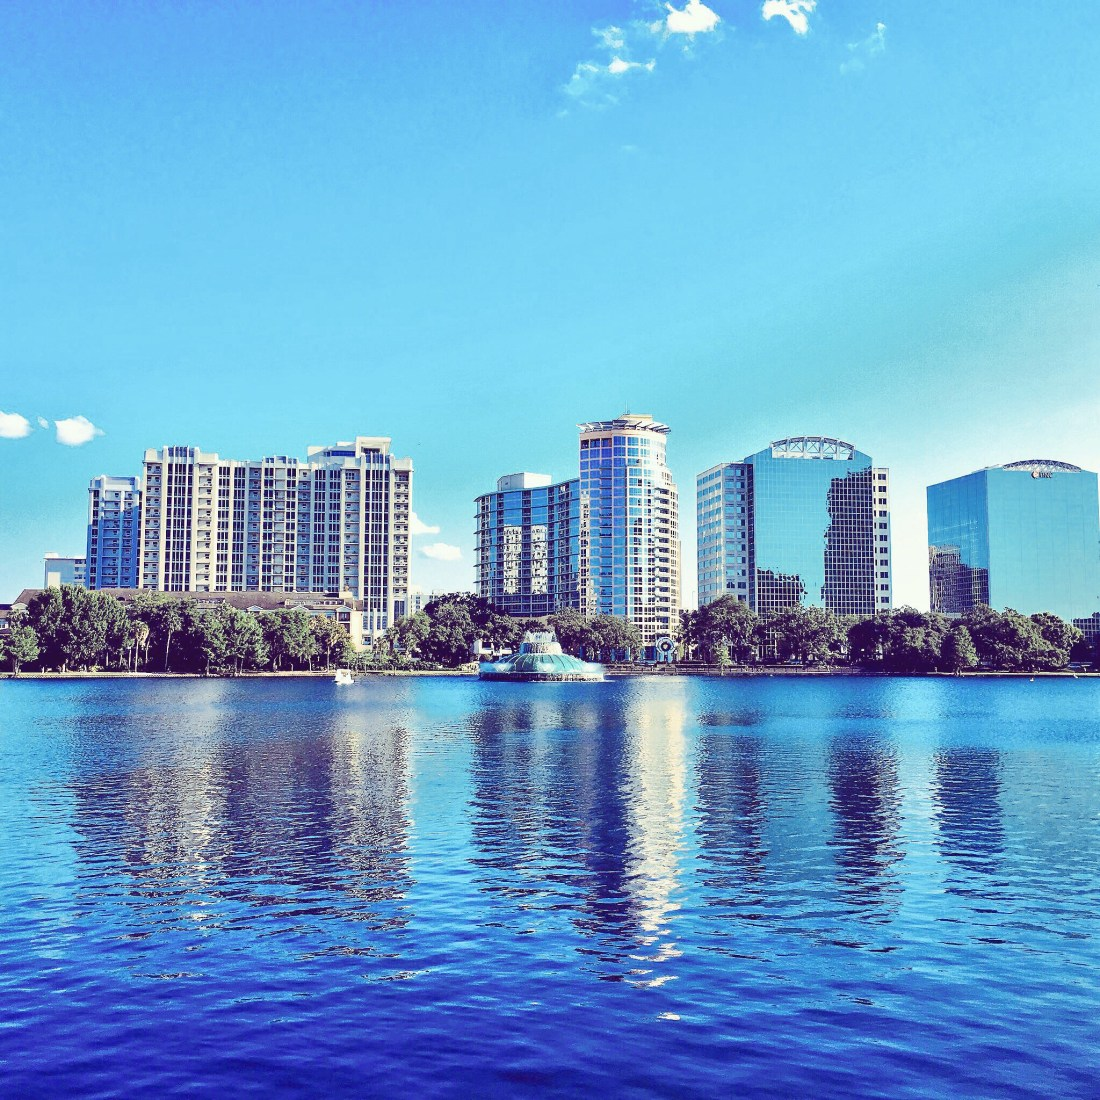 Orlando-Lake_Eola-blue